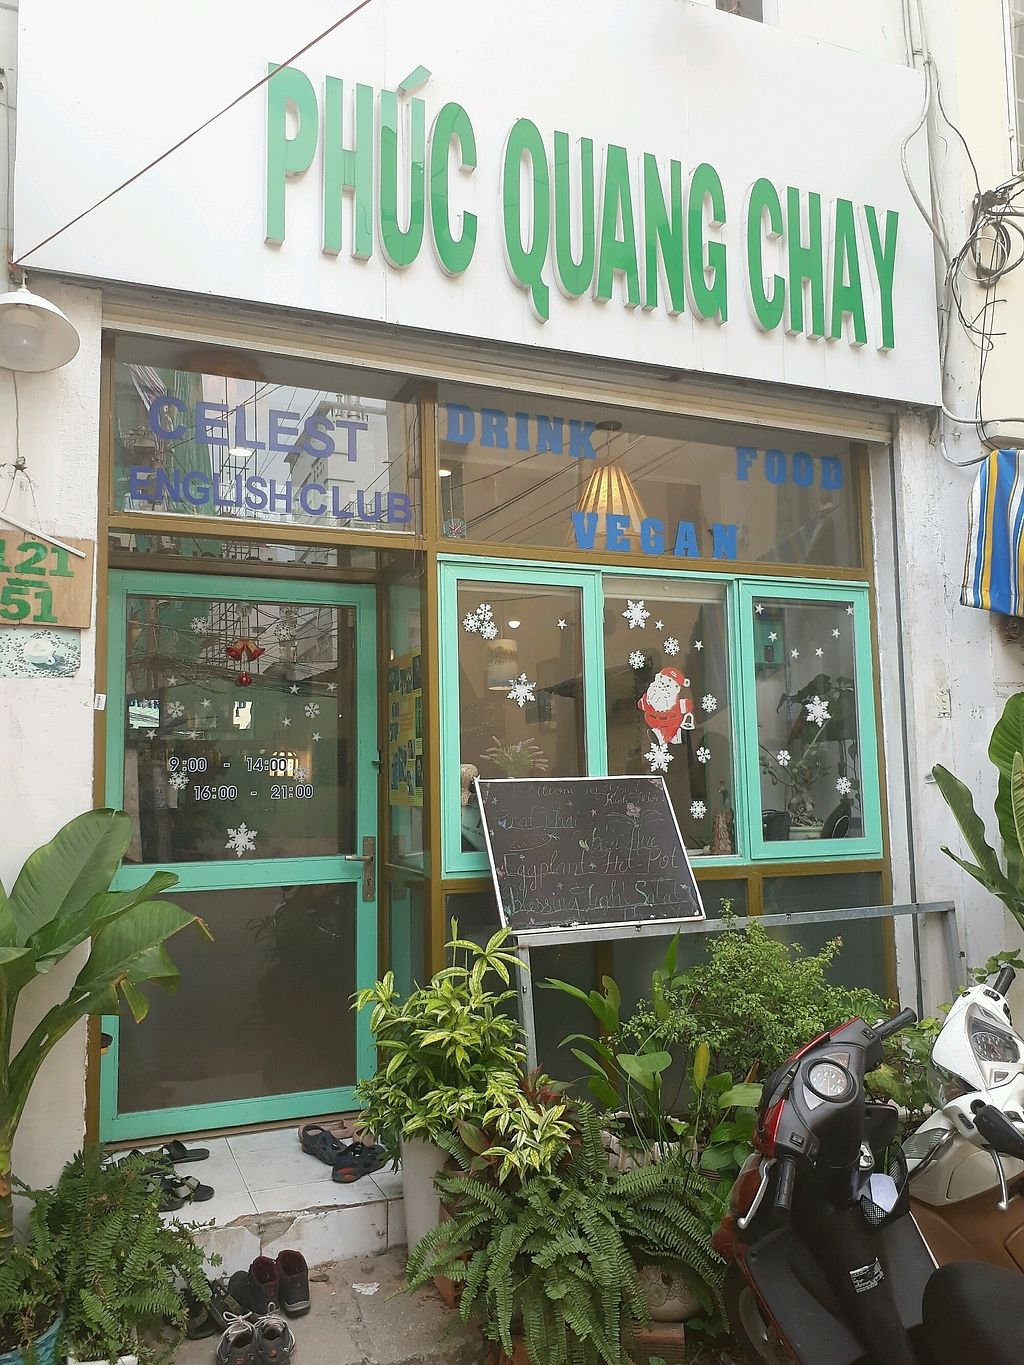 "Photo of Phuc Quang Chay  by <a href=""/members/profile/LilacHippy"">LilacHippy</a> <br/>From Outside <br/> January 1, 2018  - <a href='/contact/abuse/image/83479/341635'>Report</a>"